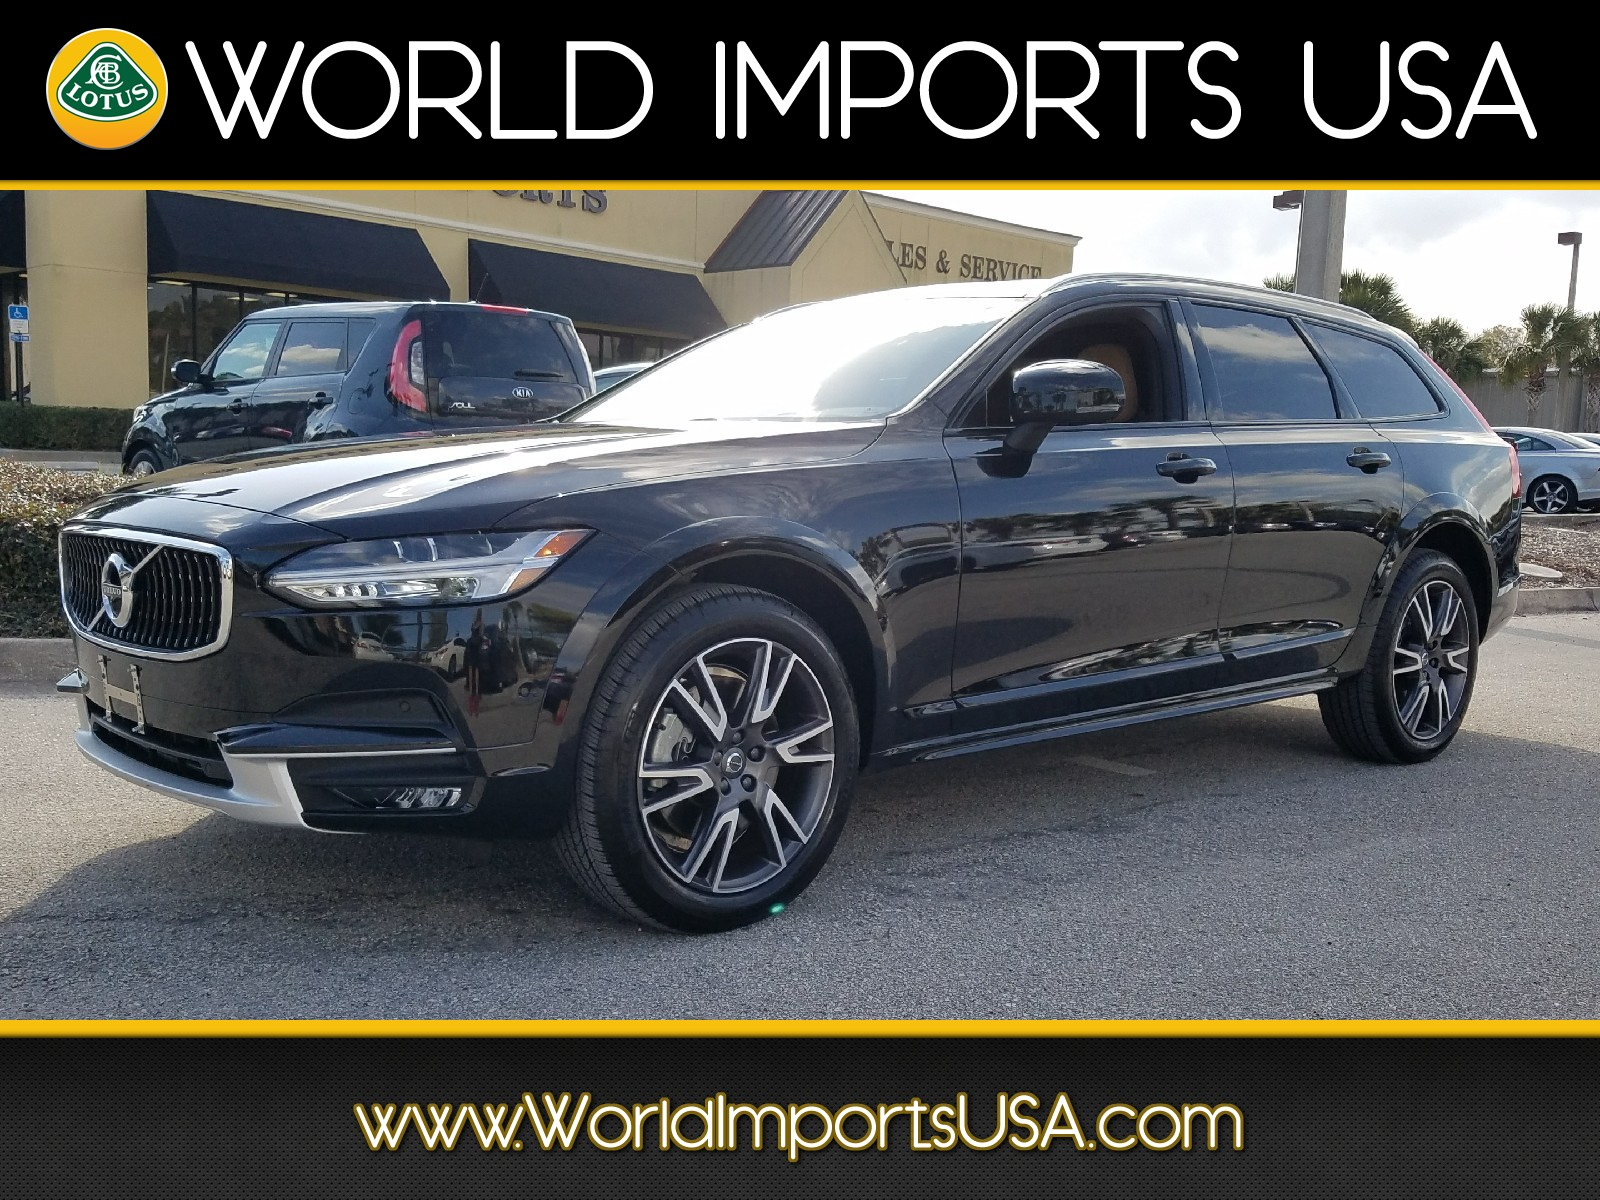 Used Cars Jacksonville New Used 2017 Volvo V90 Cross Country T6 Awd for Sale In Jacksonville Fl